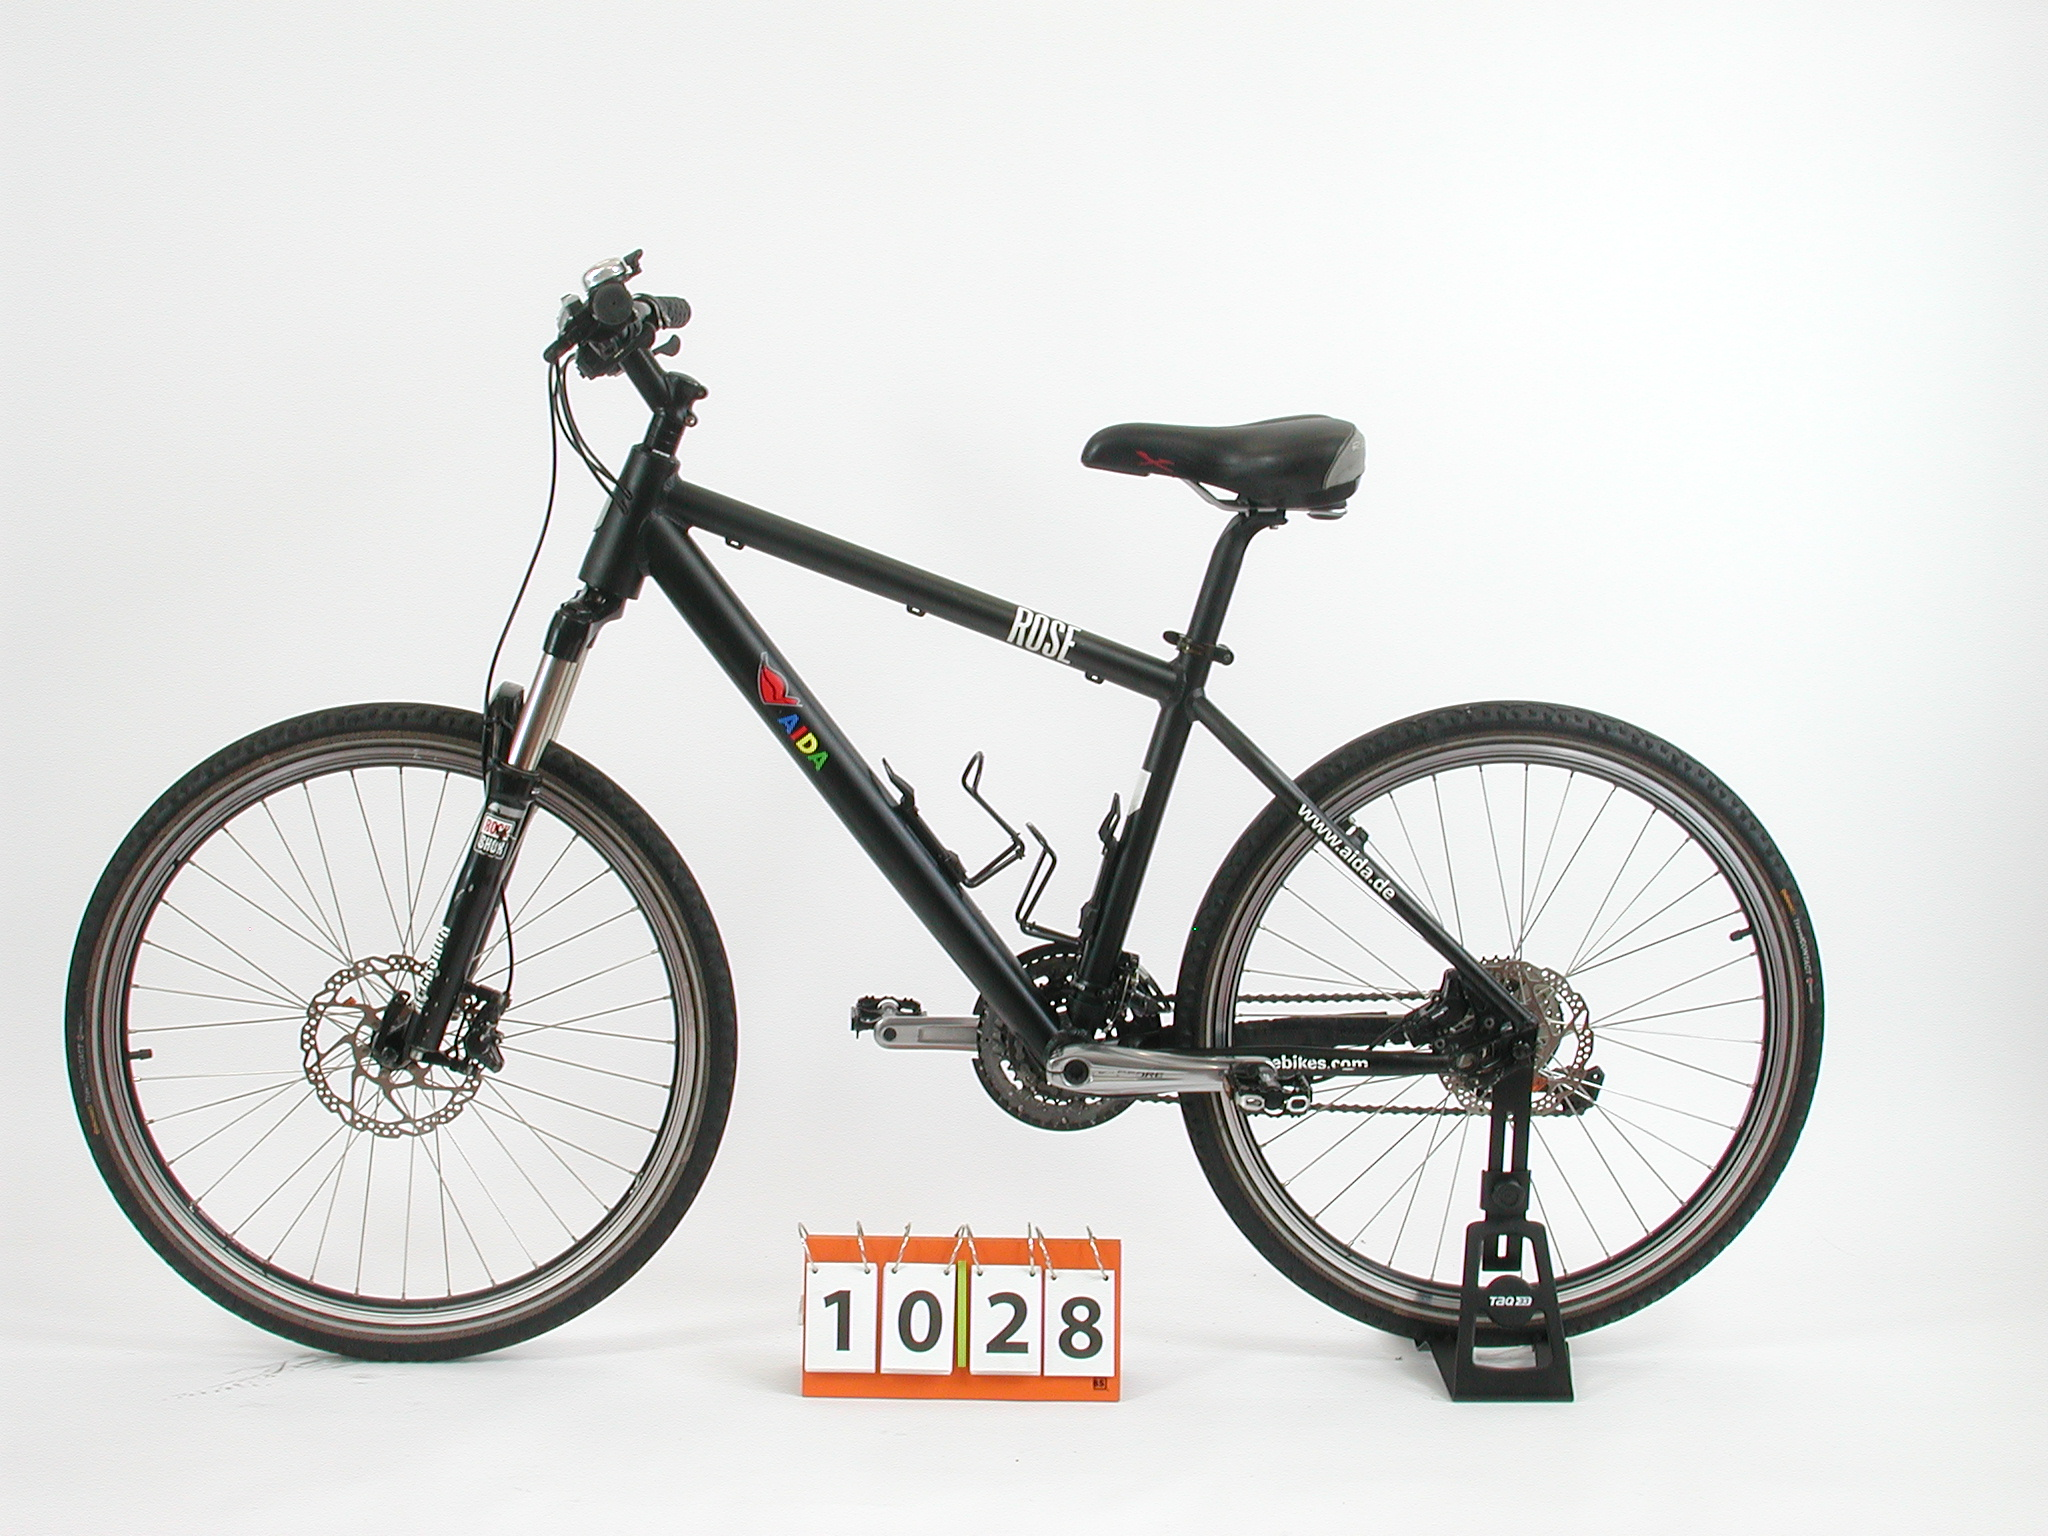 aida onlineshop aida mountainbike 16 5 zoll nr 1028. Black Bedroom Furniture Sets. Home Design Ideas